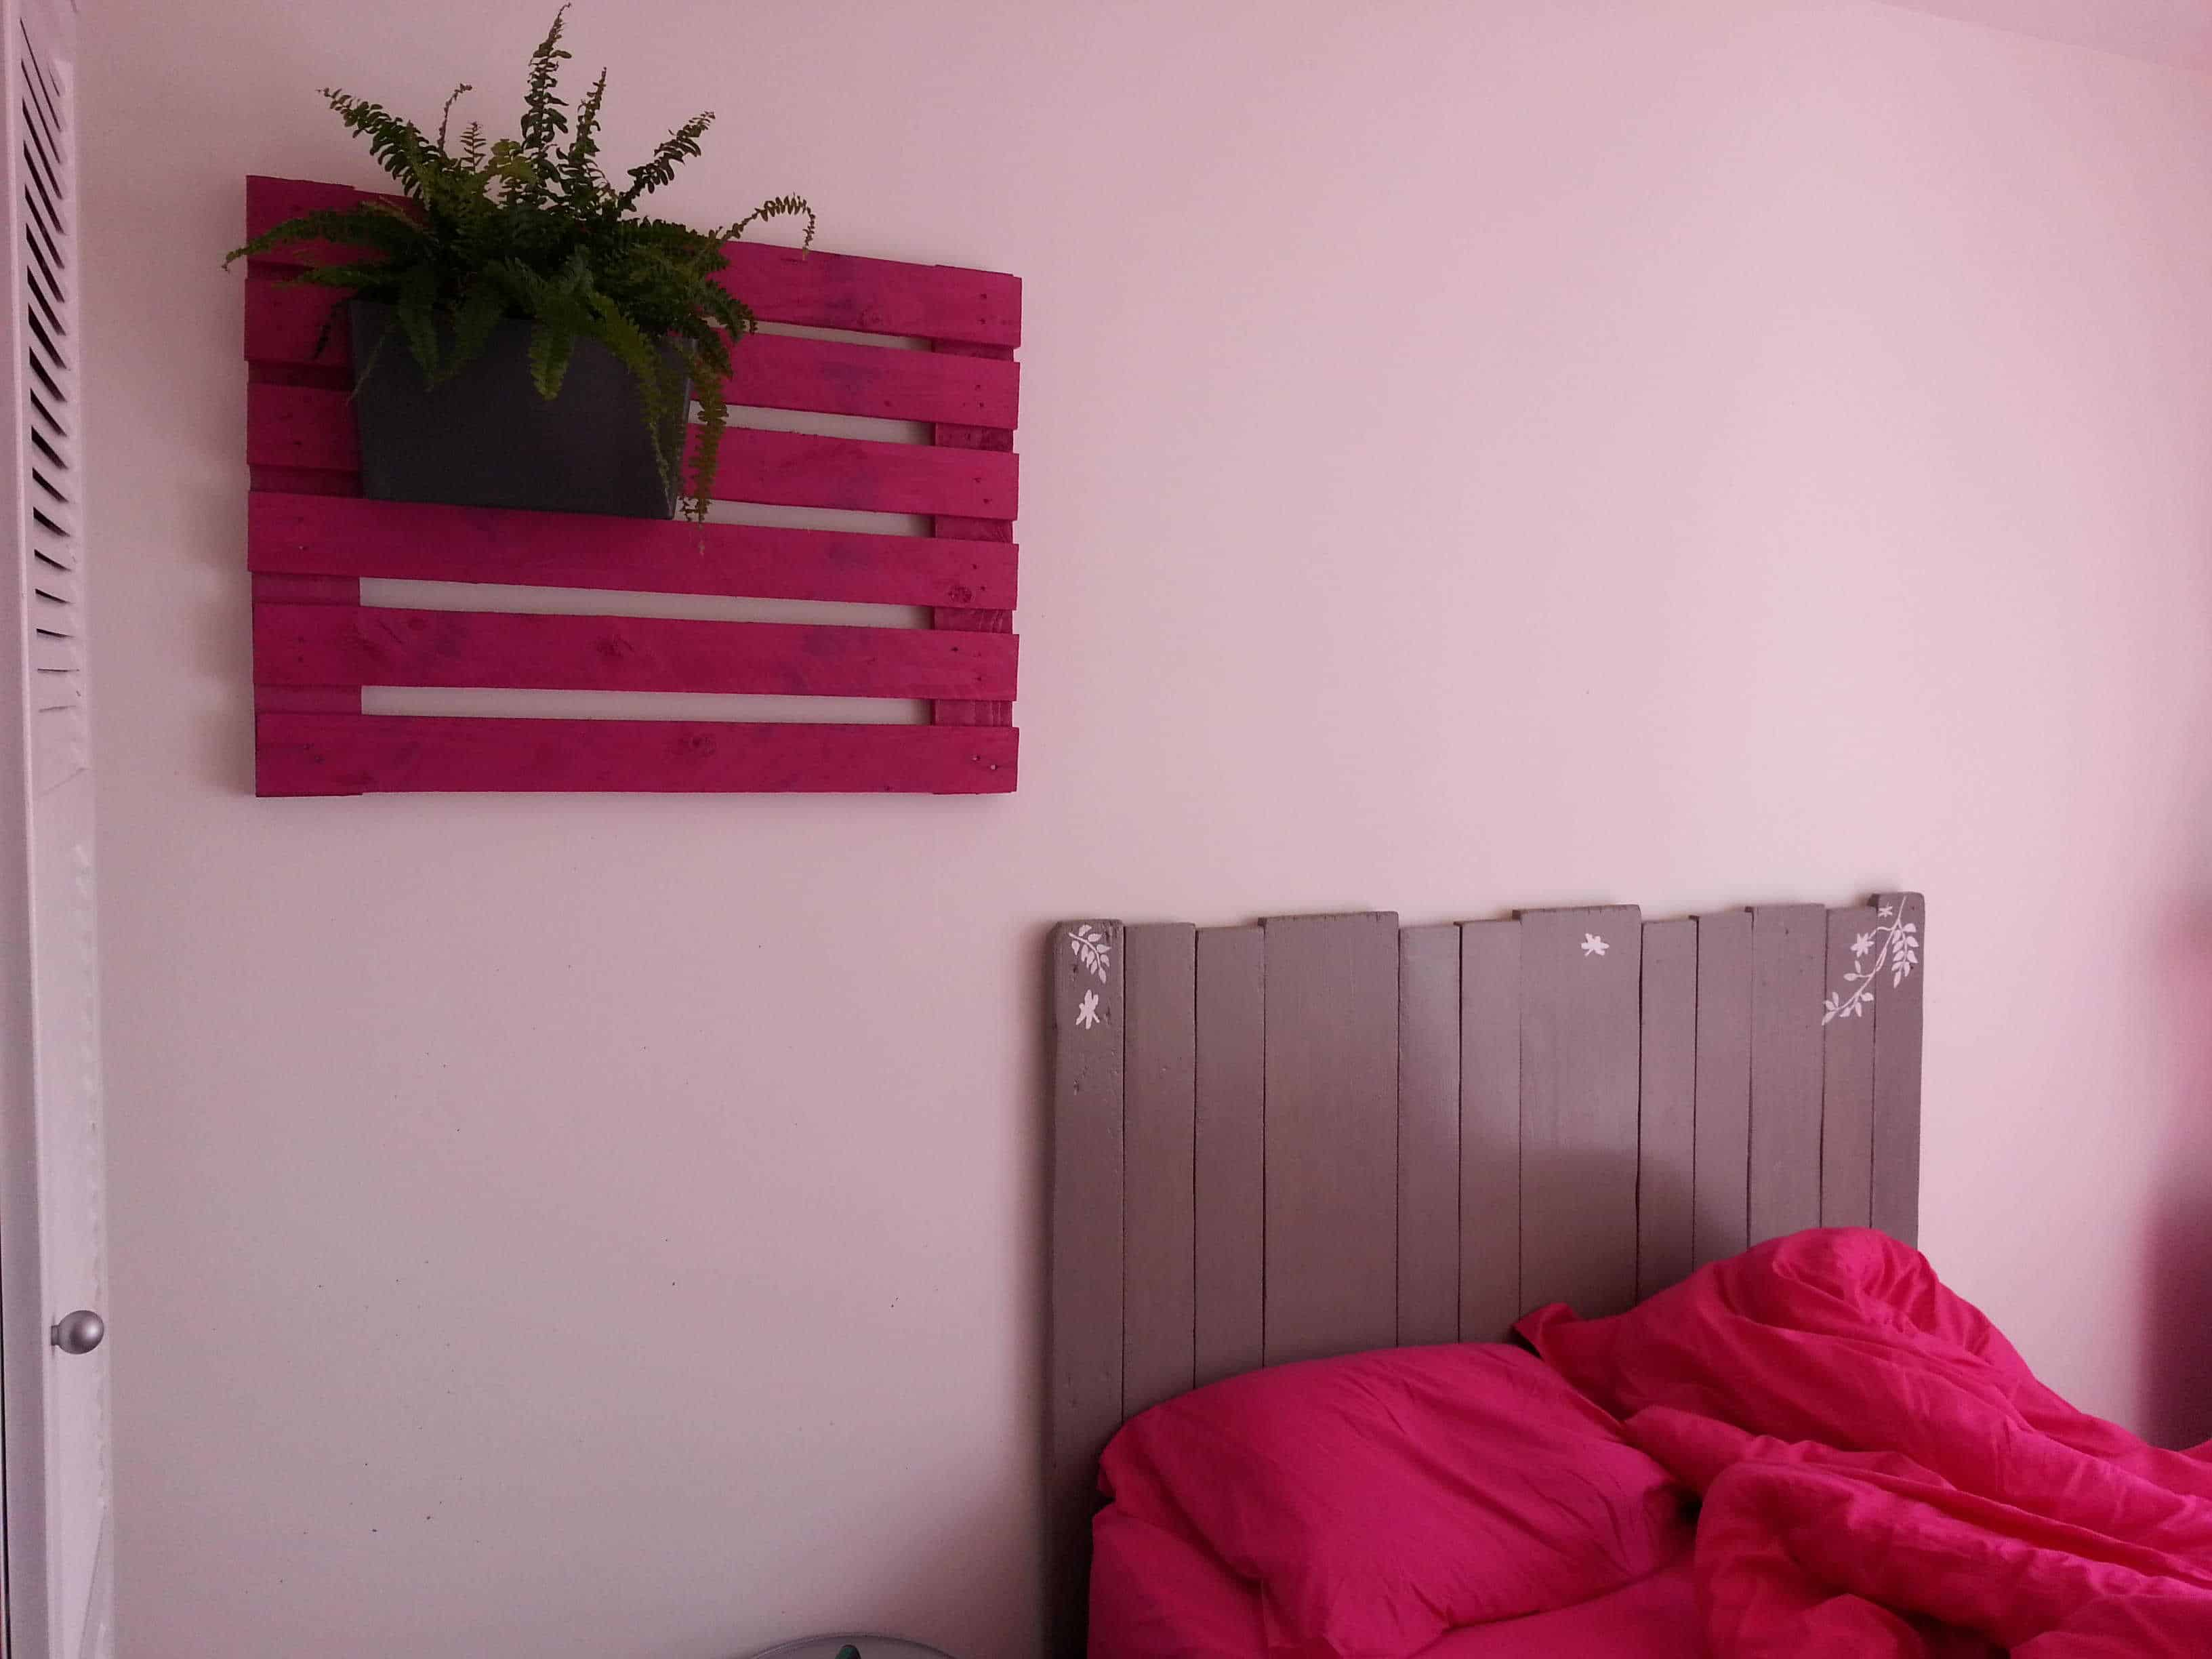 t te de lit et porte jardini res pallet bed headboard wall planter holder 1001 pallets. Black Bedroom Furniture Sets. Home Design Ideas